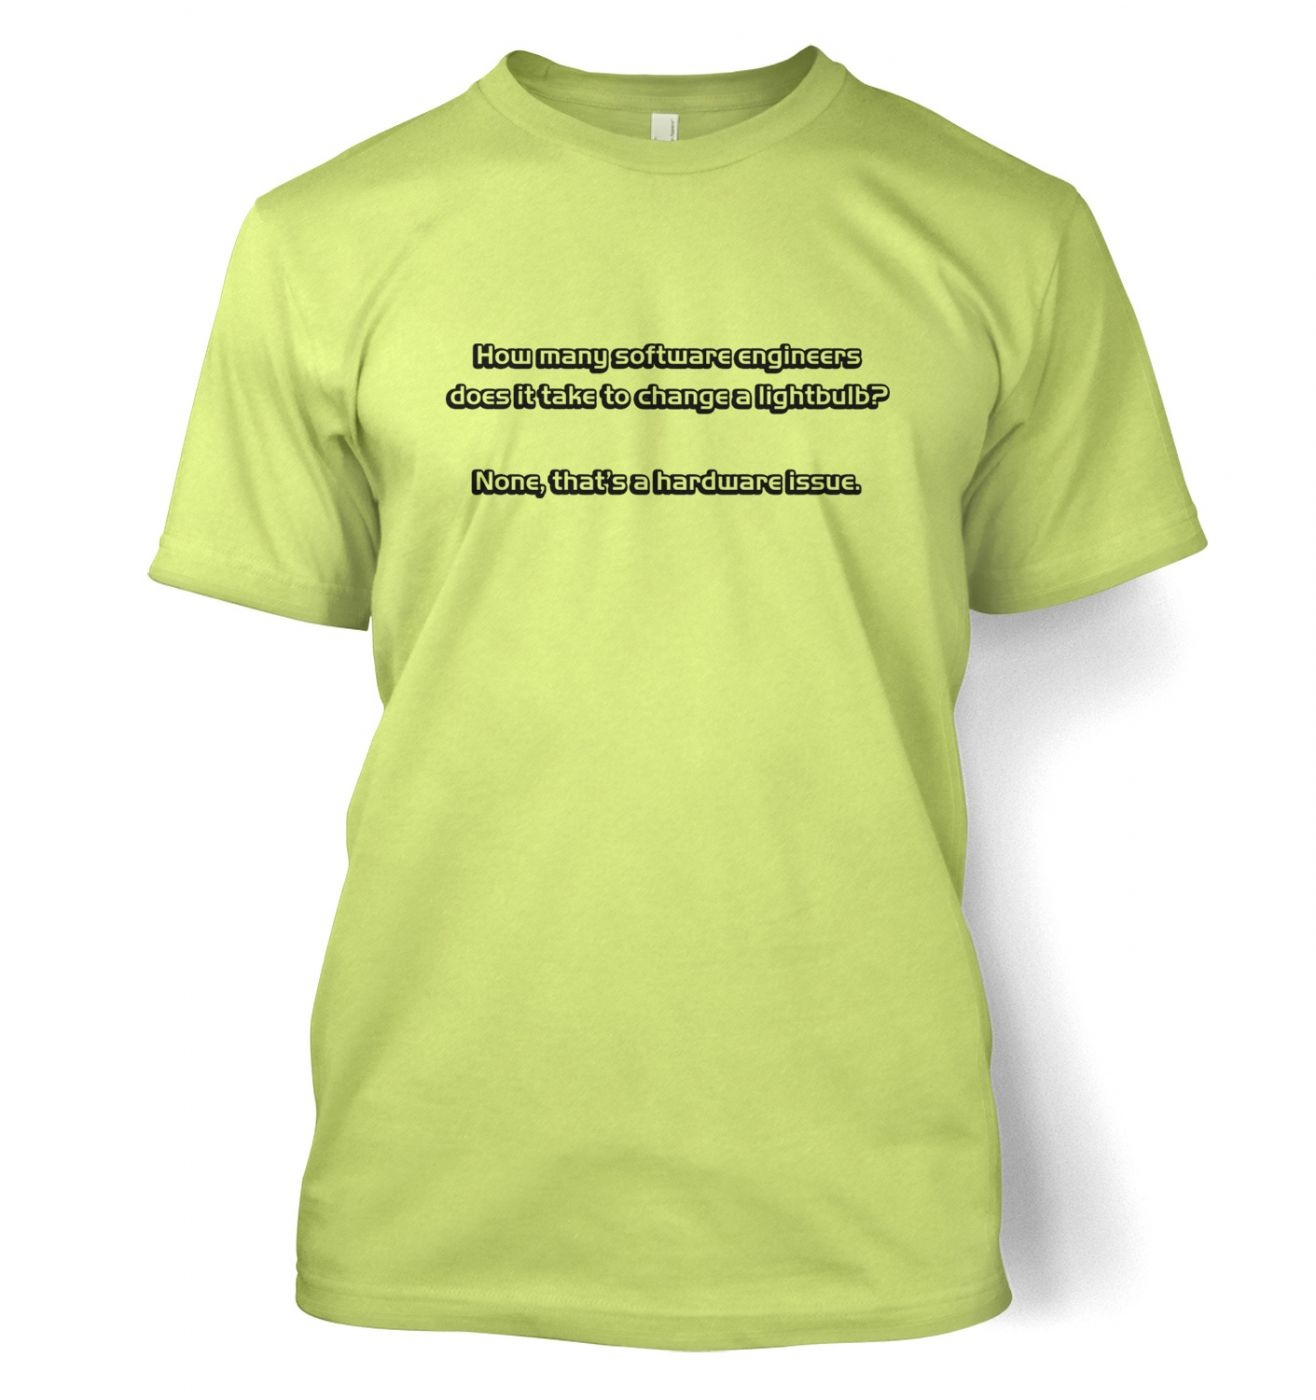 Hardware Issue t-shirt - funny IT tshirt for programmers and sys admins